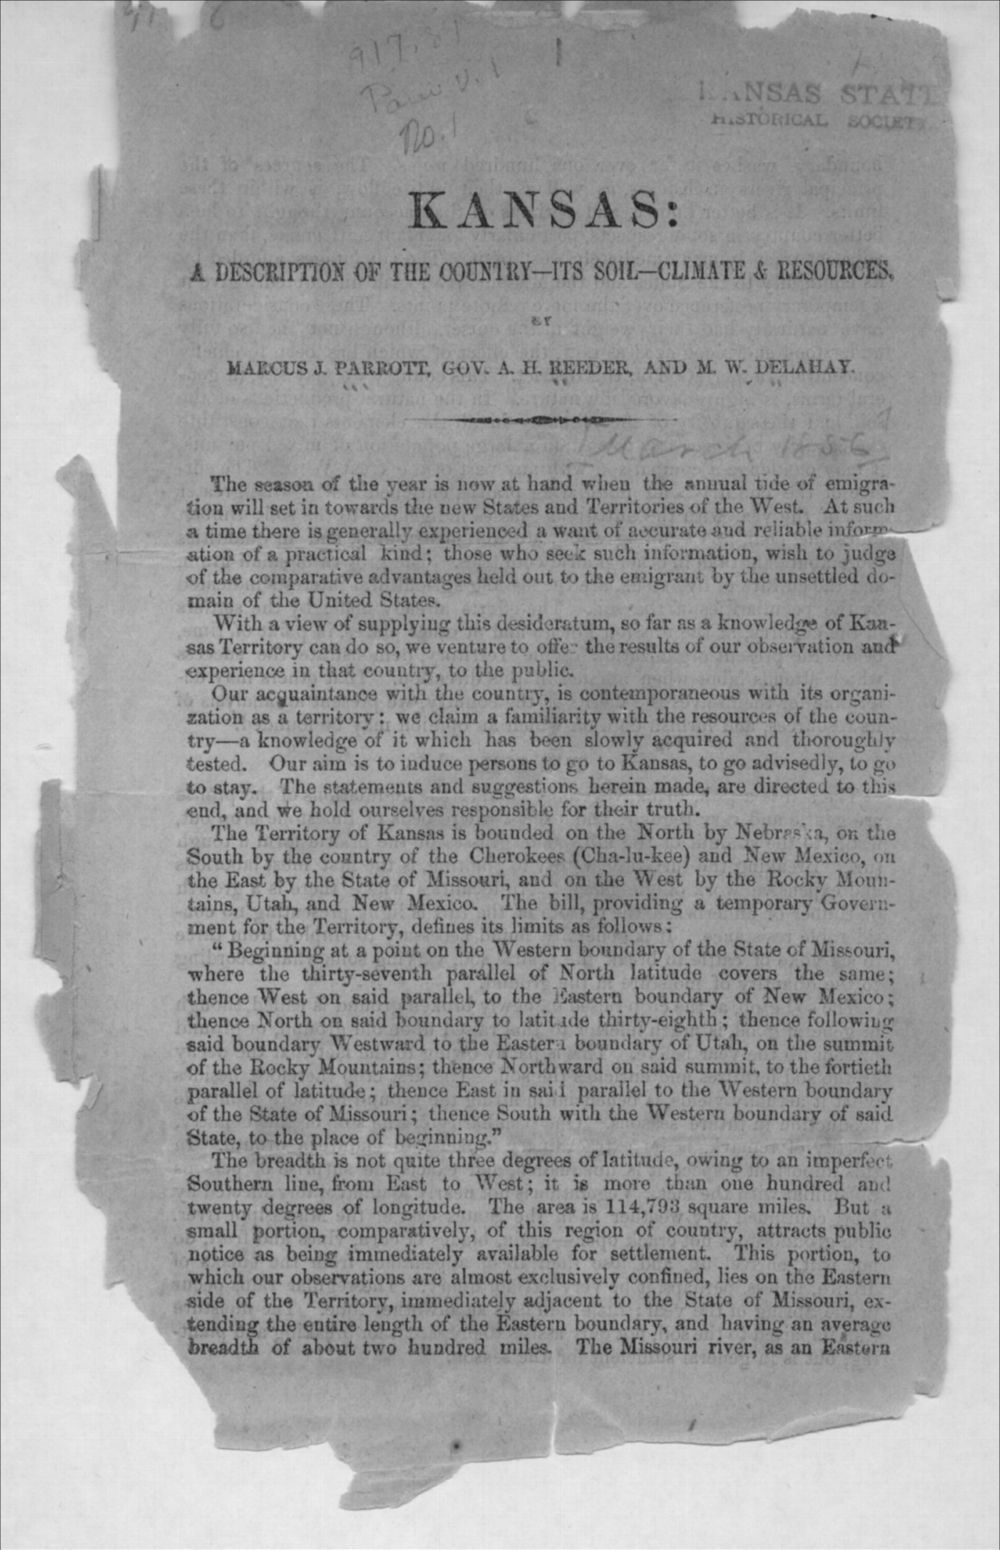 Kansas: a description of the country, its soil, climate & resources - 1